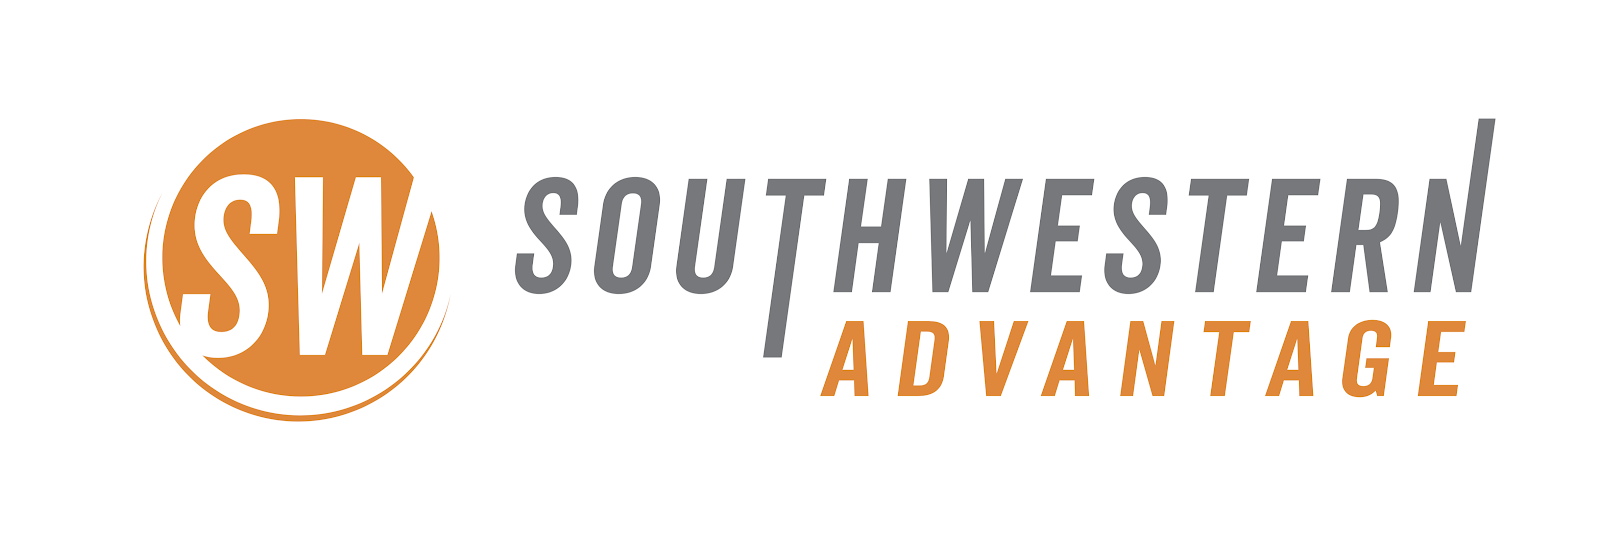 Southwestern Advantage Blog